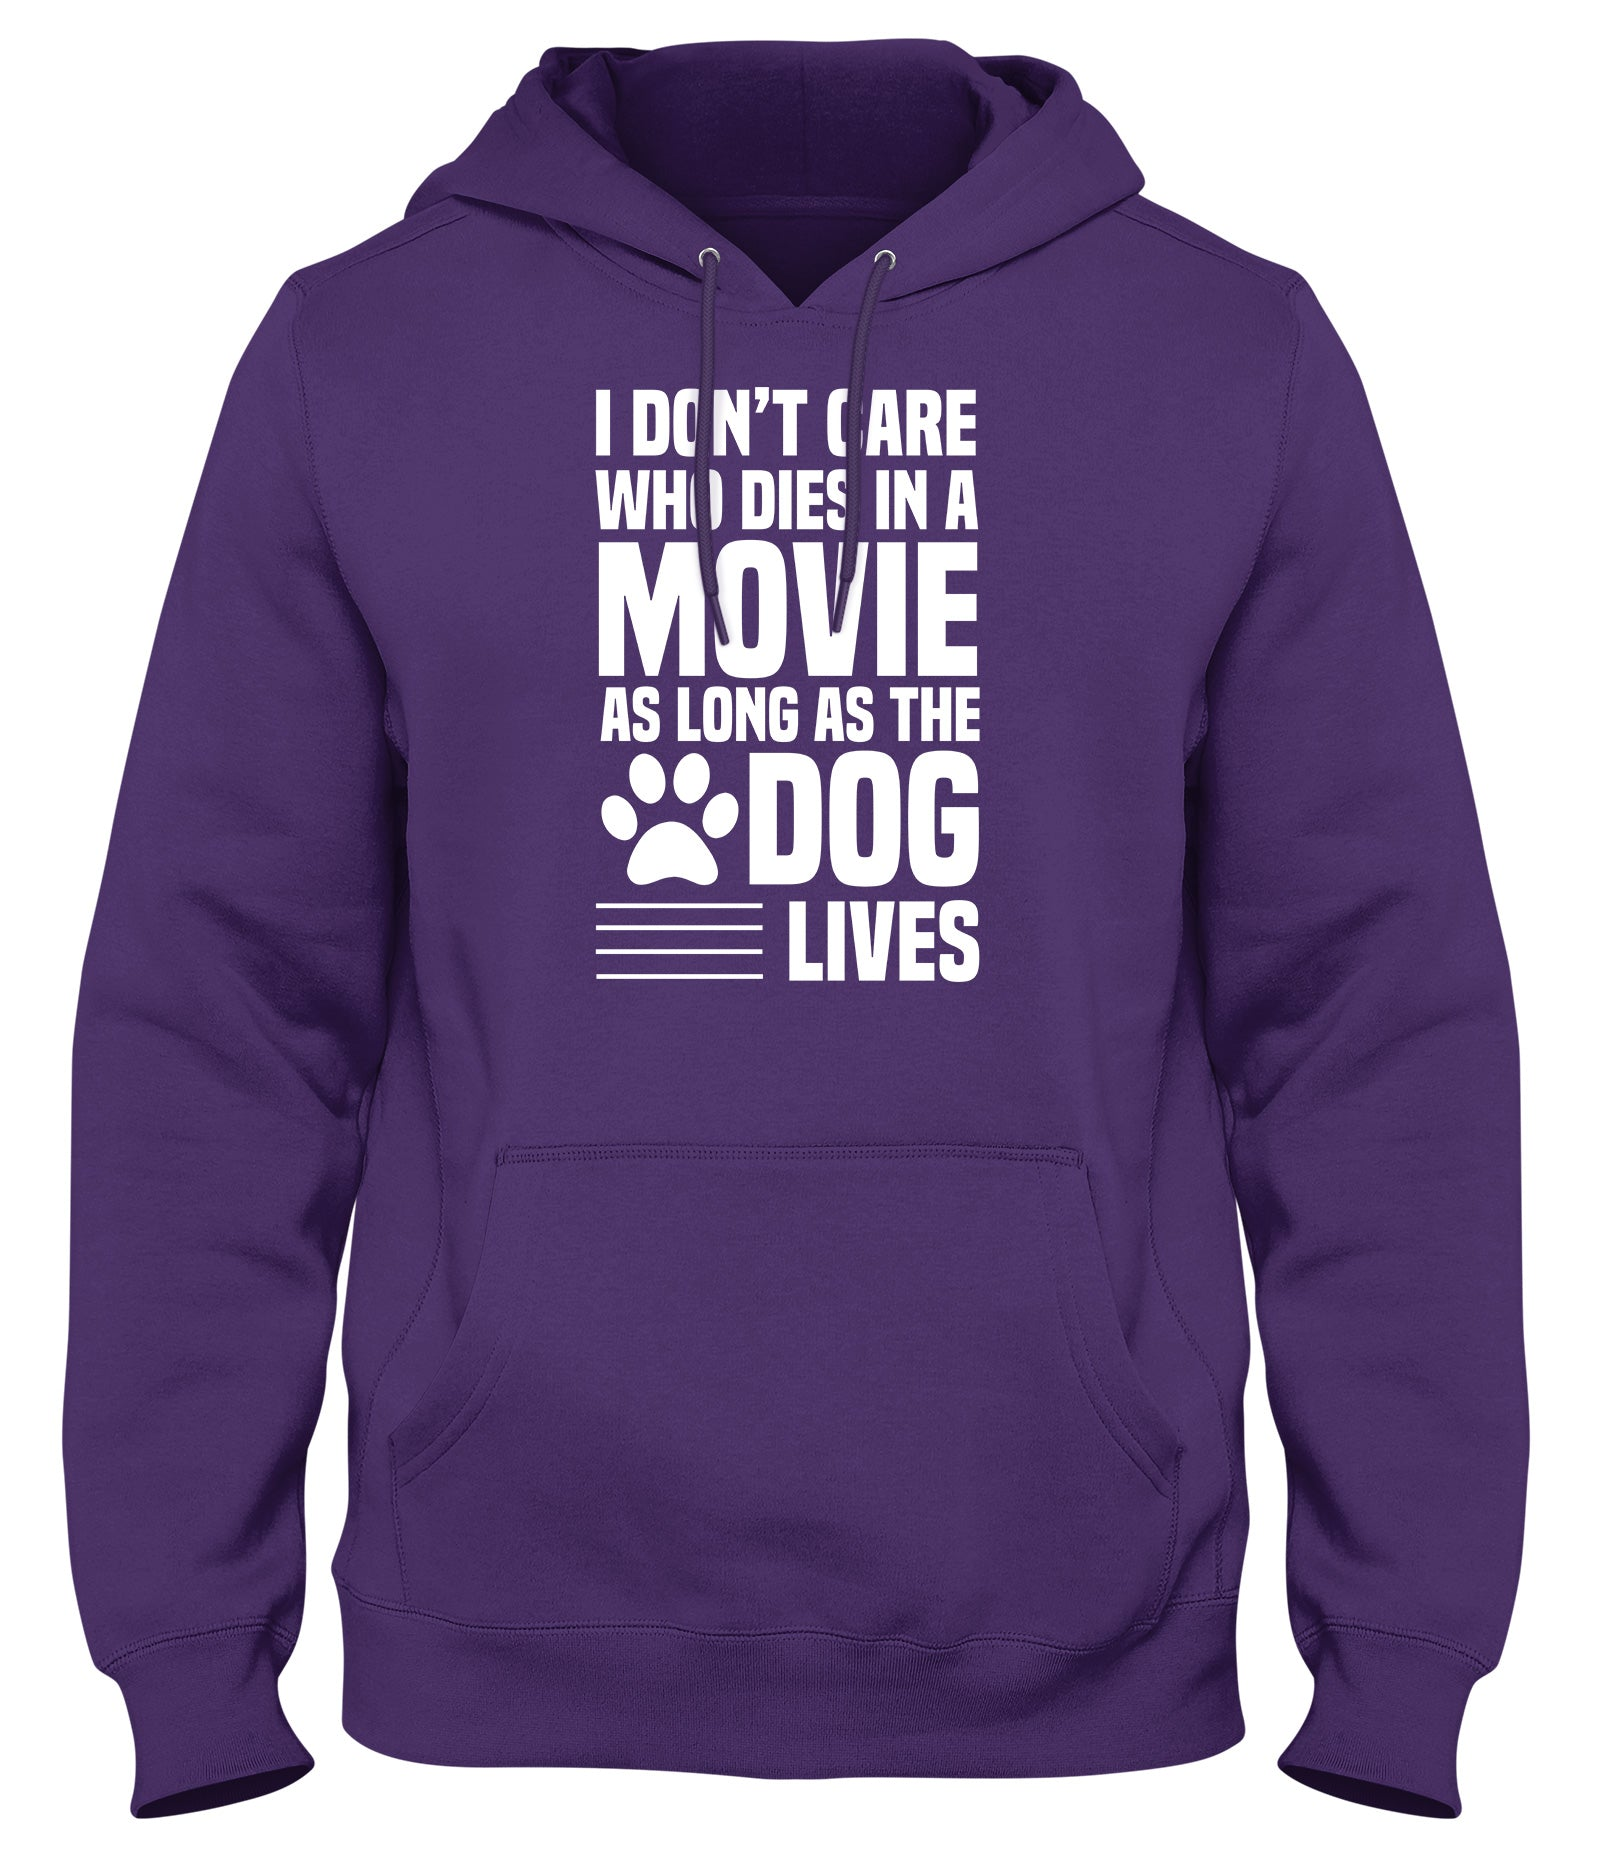 I DON'T CARE WHO DIES IN A MOVIE AS LONG AS THE DOG LIVES MENS WOMENS LADIES UNISEX FUNNY SLOGAN HOODIE